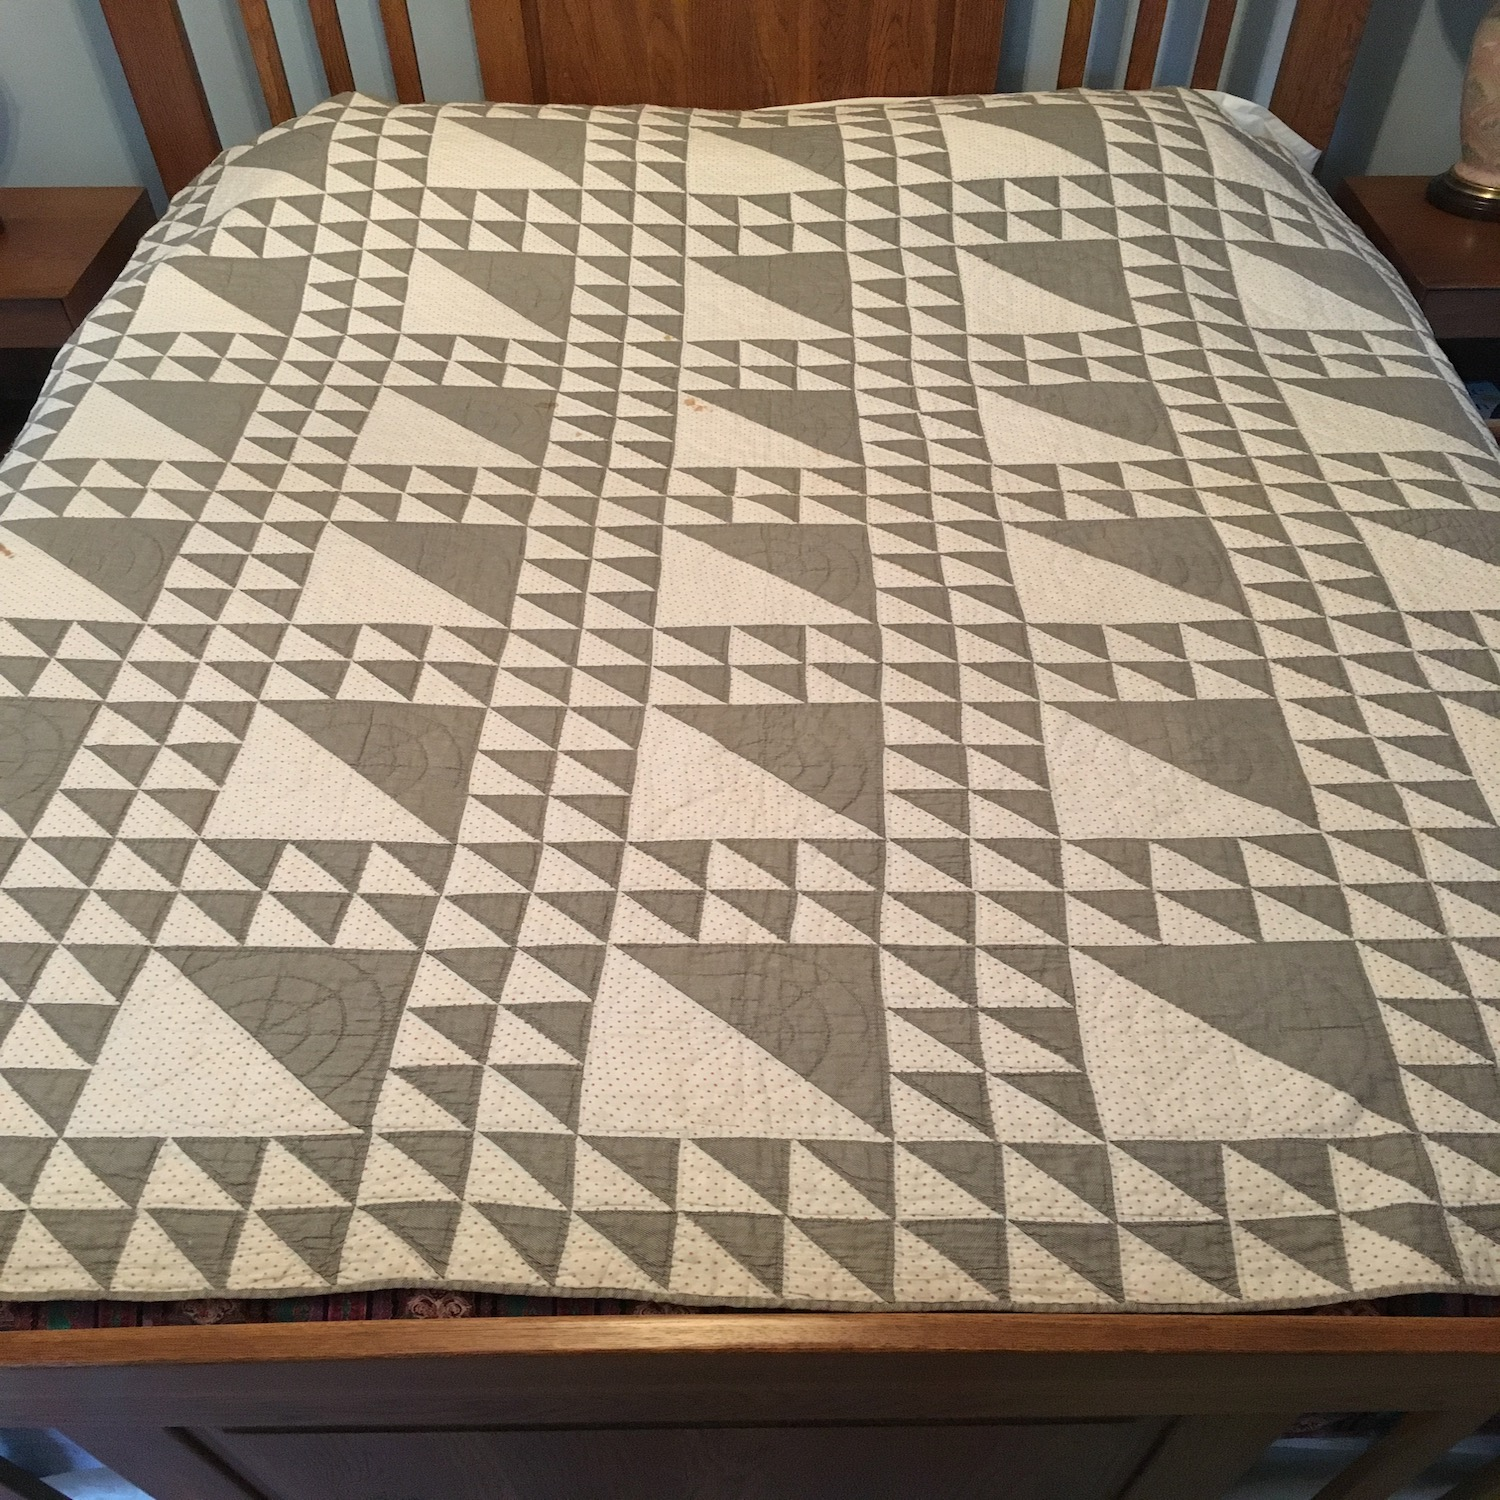 Lady of the Lake quilt